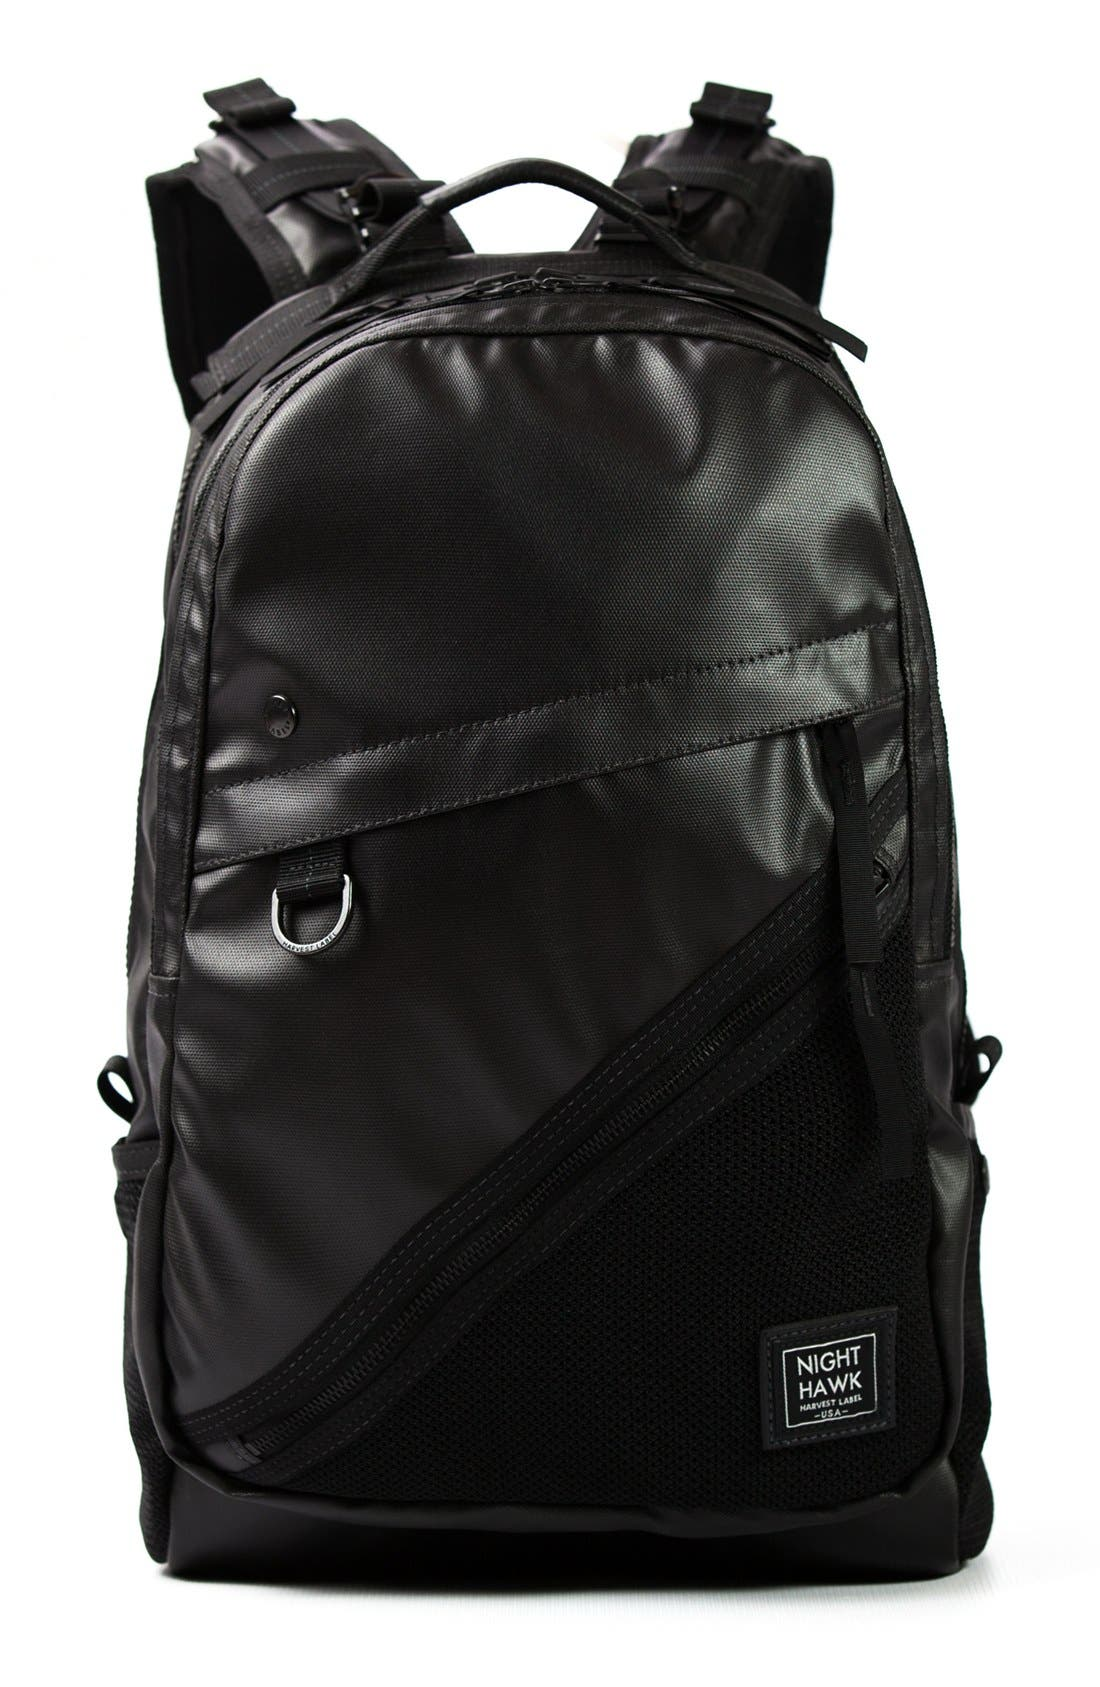 'NightHawk' Backpack,                         Main,                         color, Black